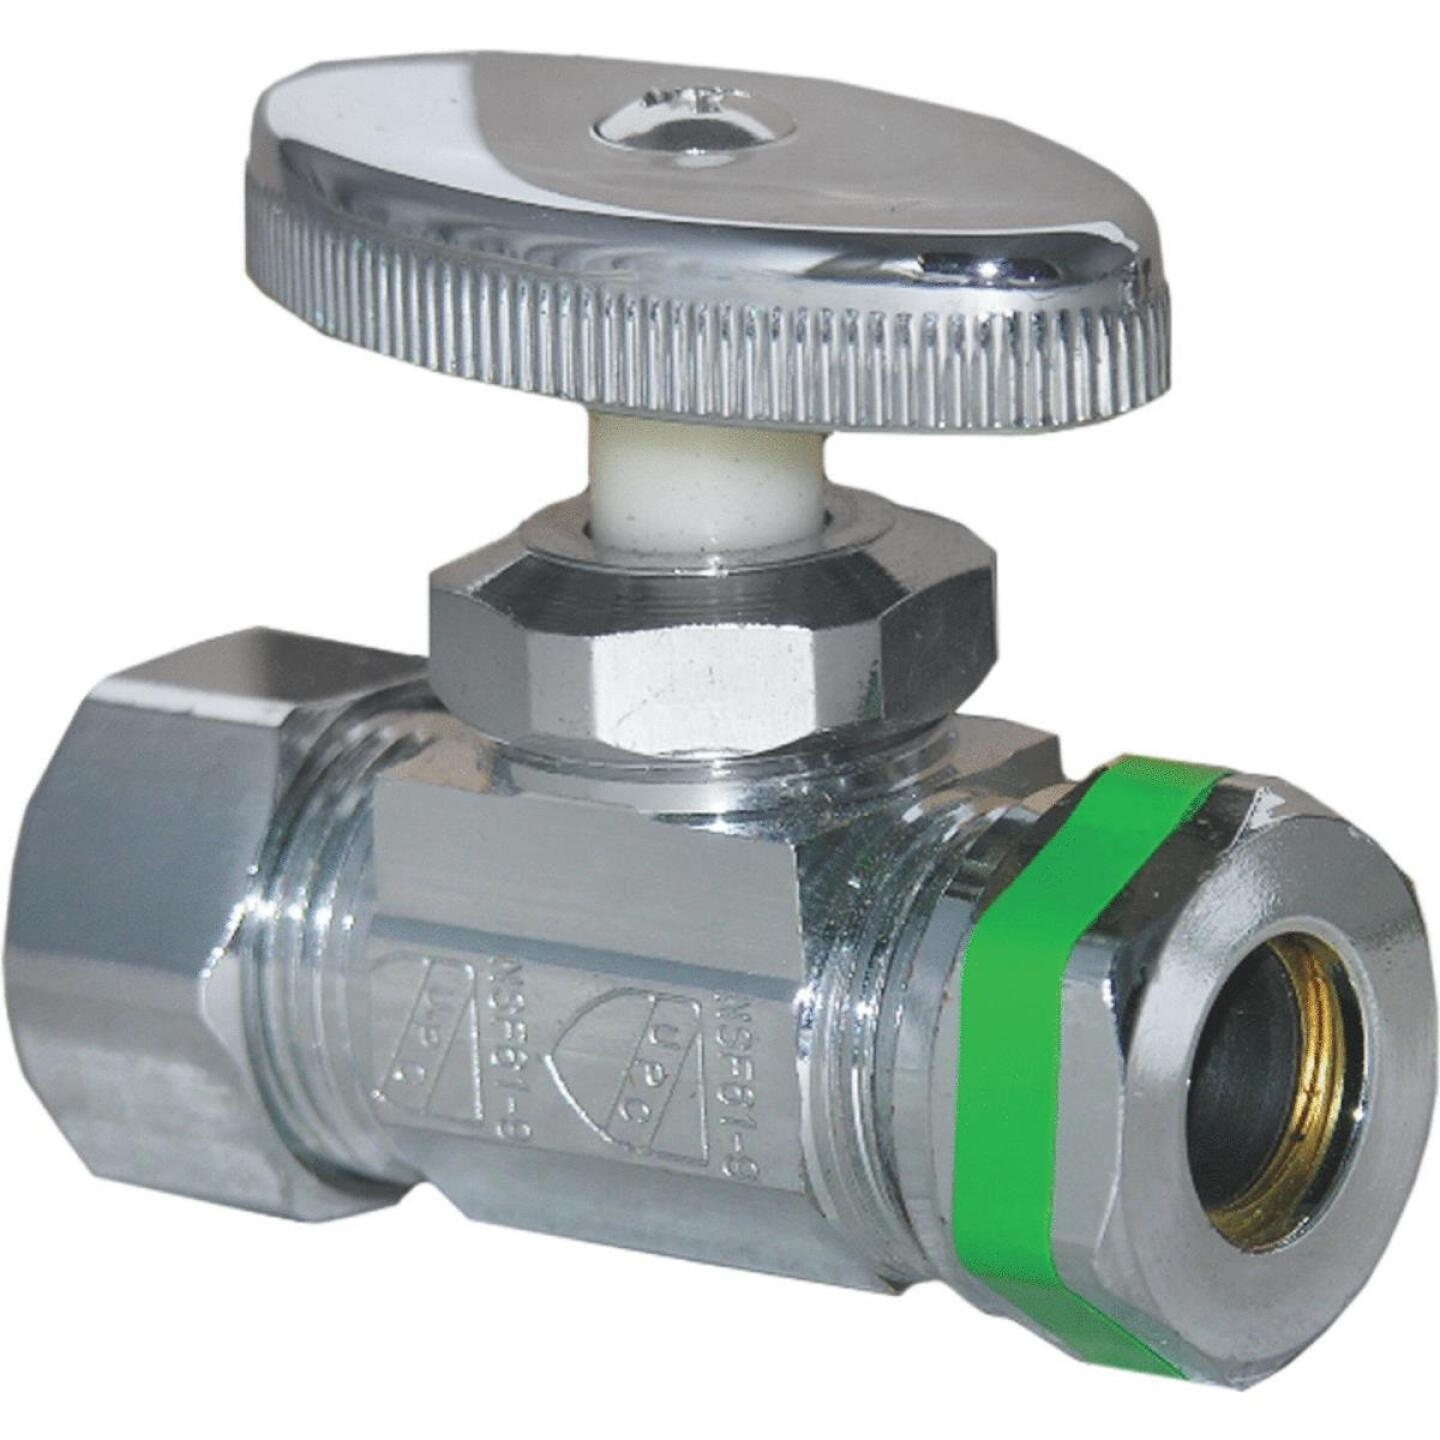 Lasco 5/8 In. Comp Inlet x 1/2 In. IP S-J Outlet Brass Straight Stop Valve Image 1